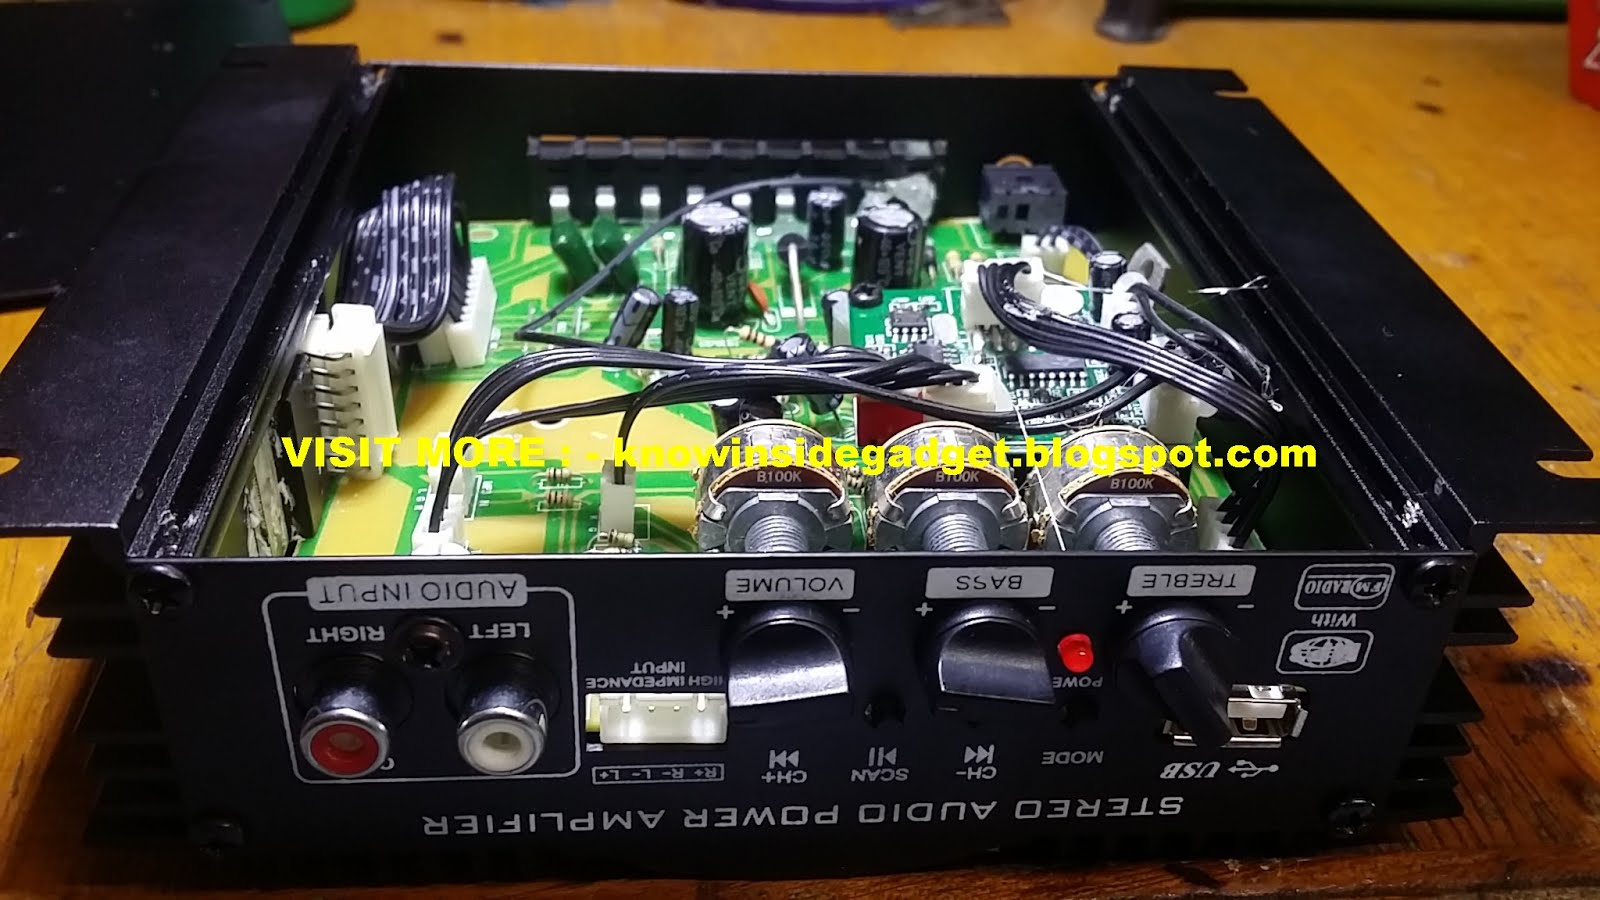 What Inside These Stuff August 2018 Circuit Power Audio Amplifier Stereo With Tda7293 200 Watts Rms Dual Channel Car Usb Sd Card Fm And Remote Control Specifications Two For Input